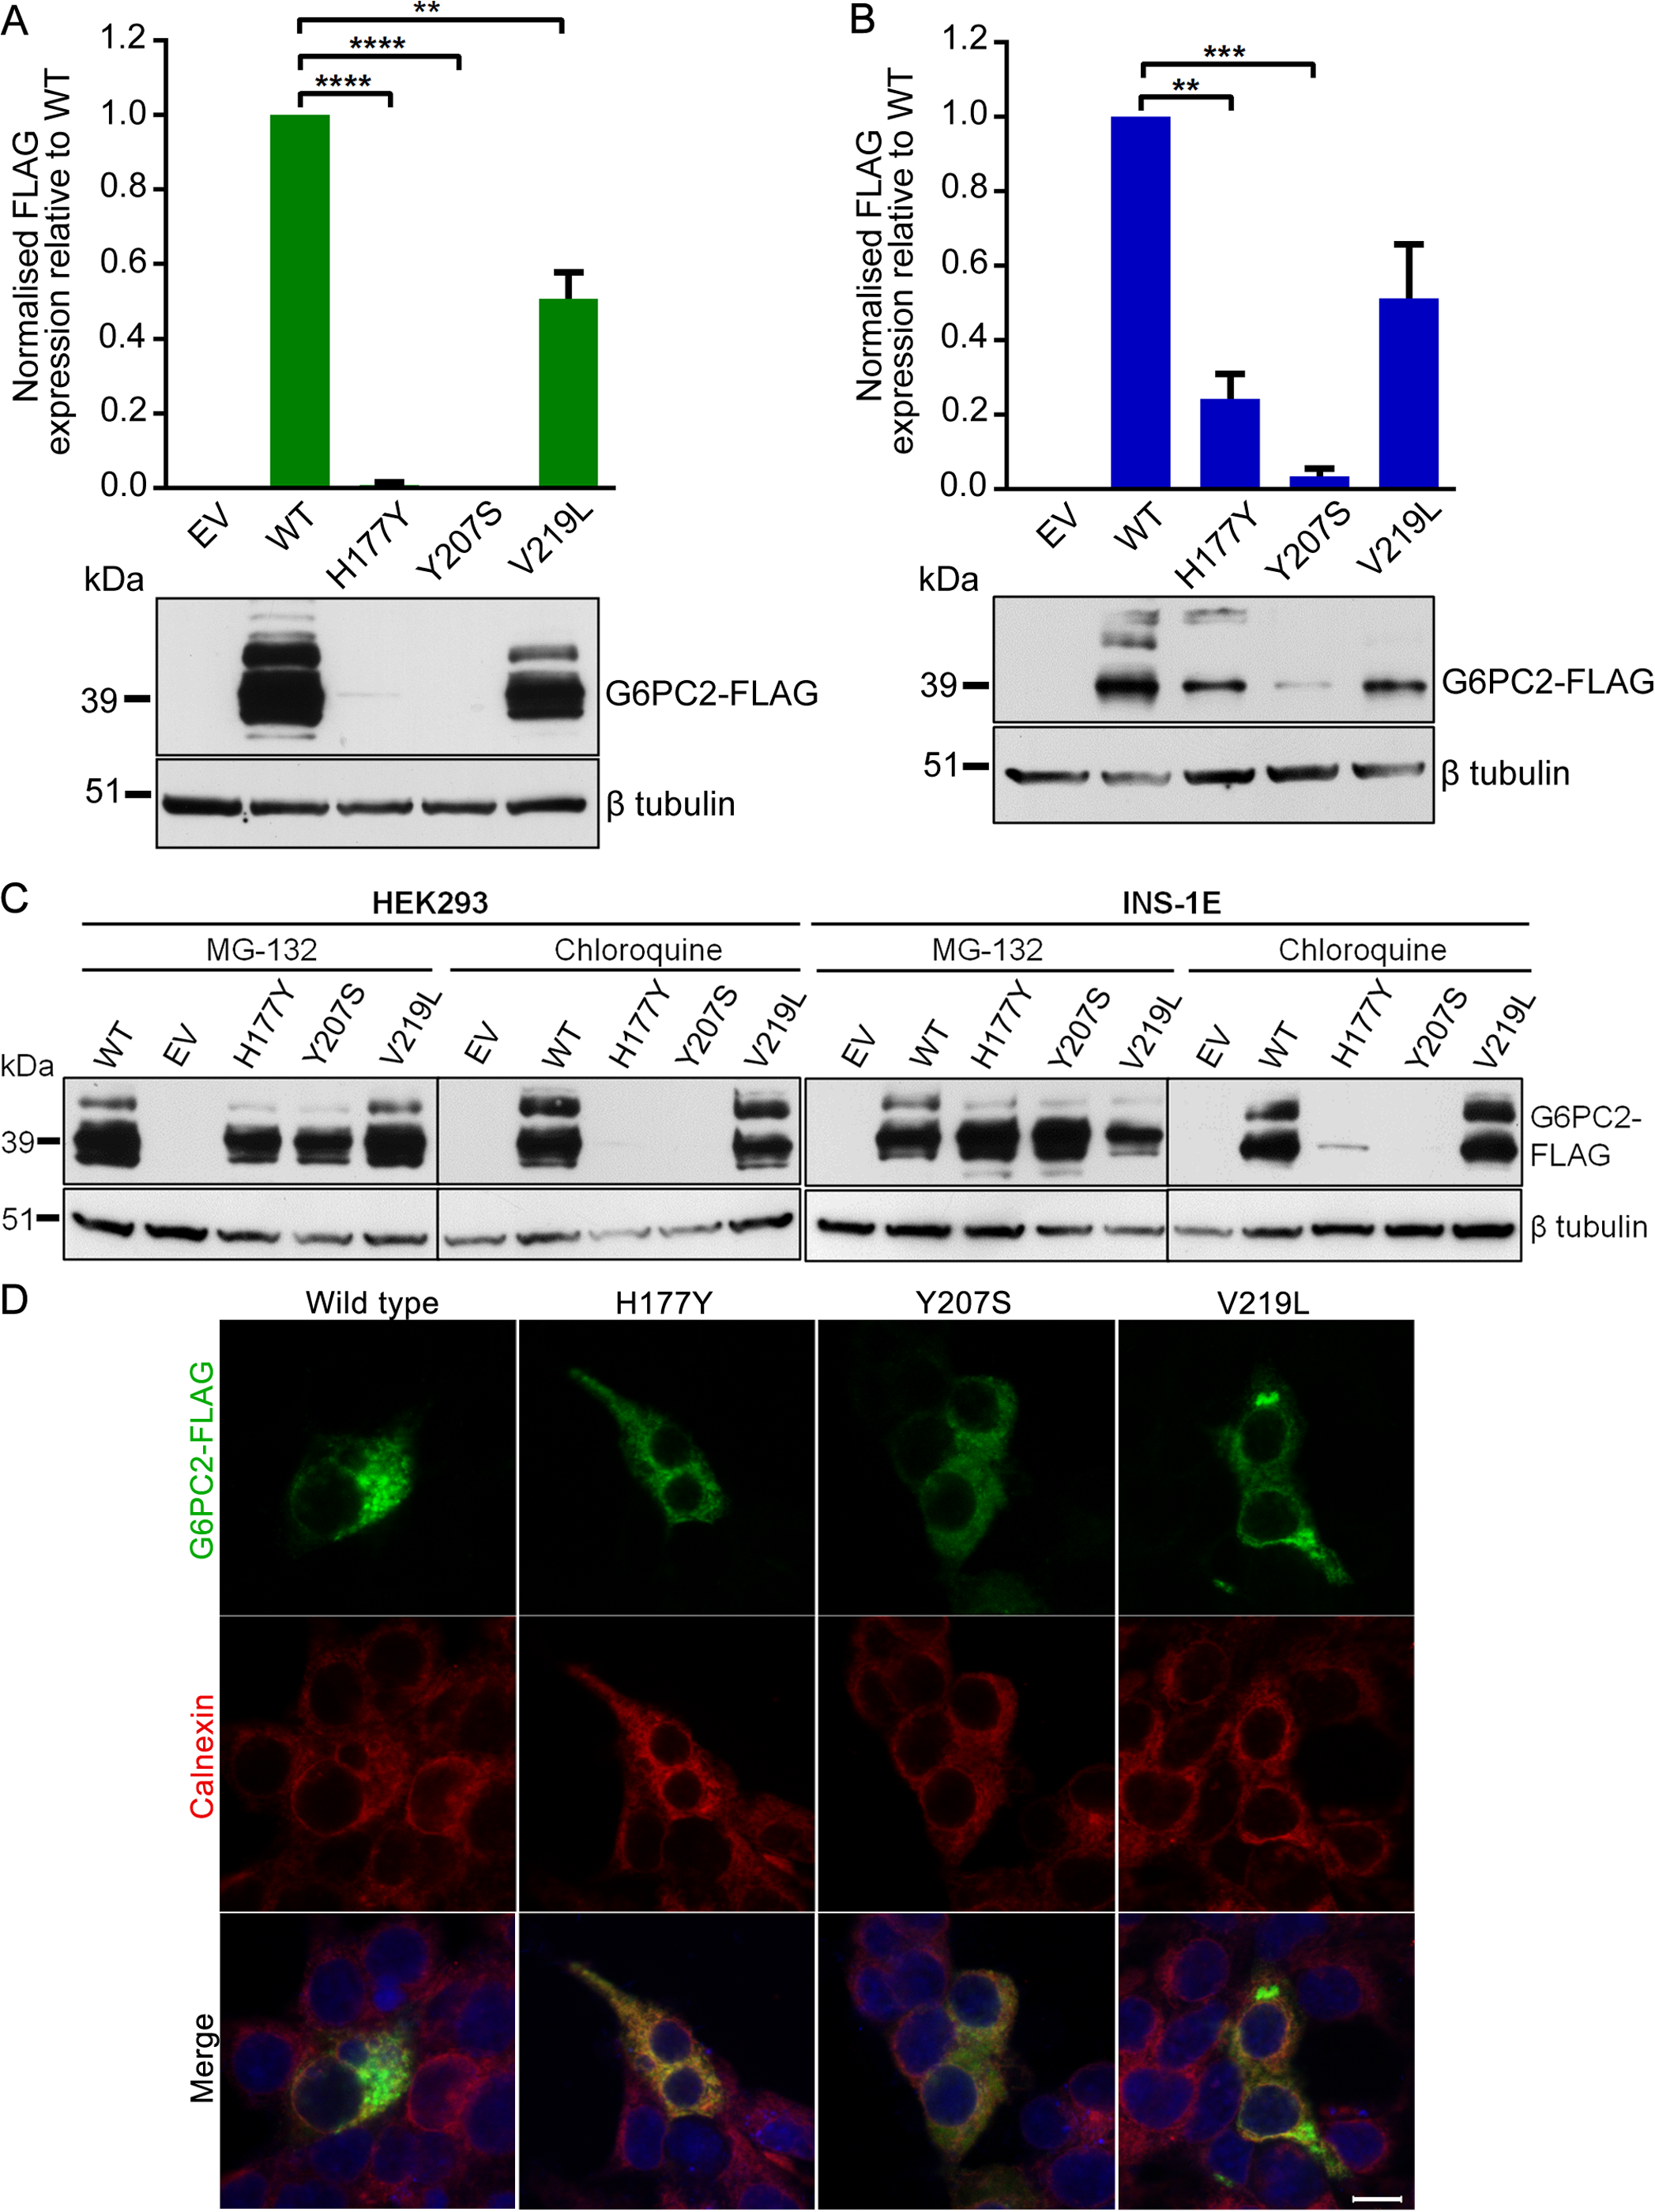 Functional characterization of wild type and variant G6PC2 proteins.